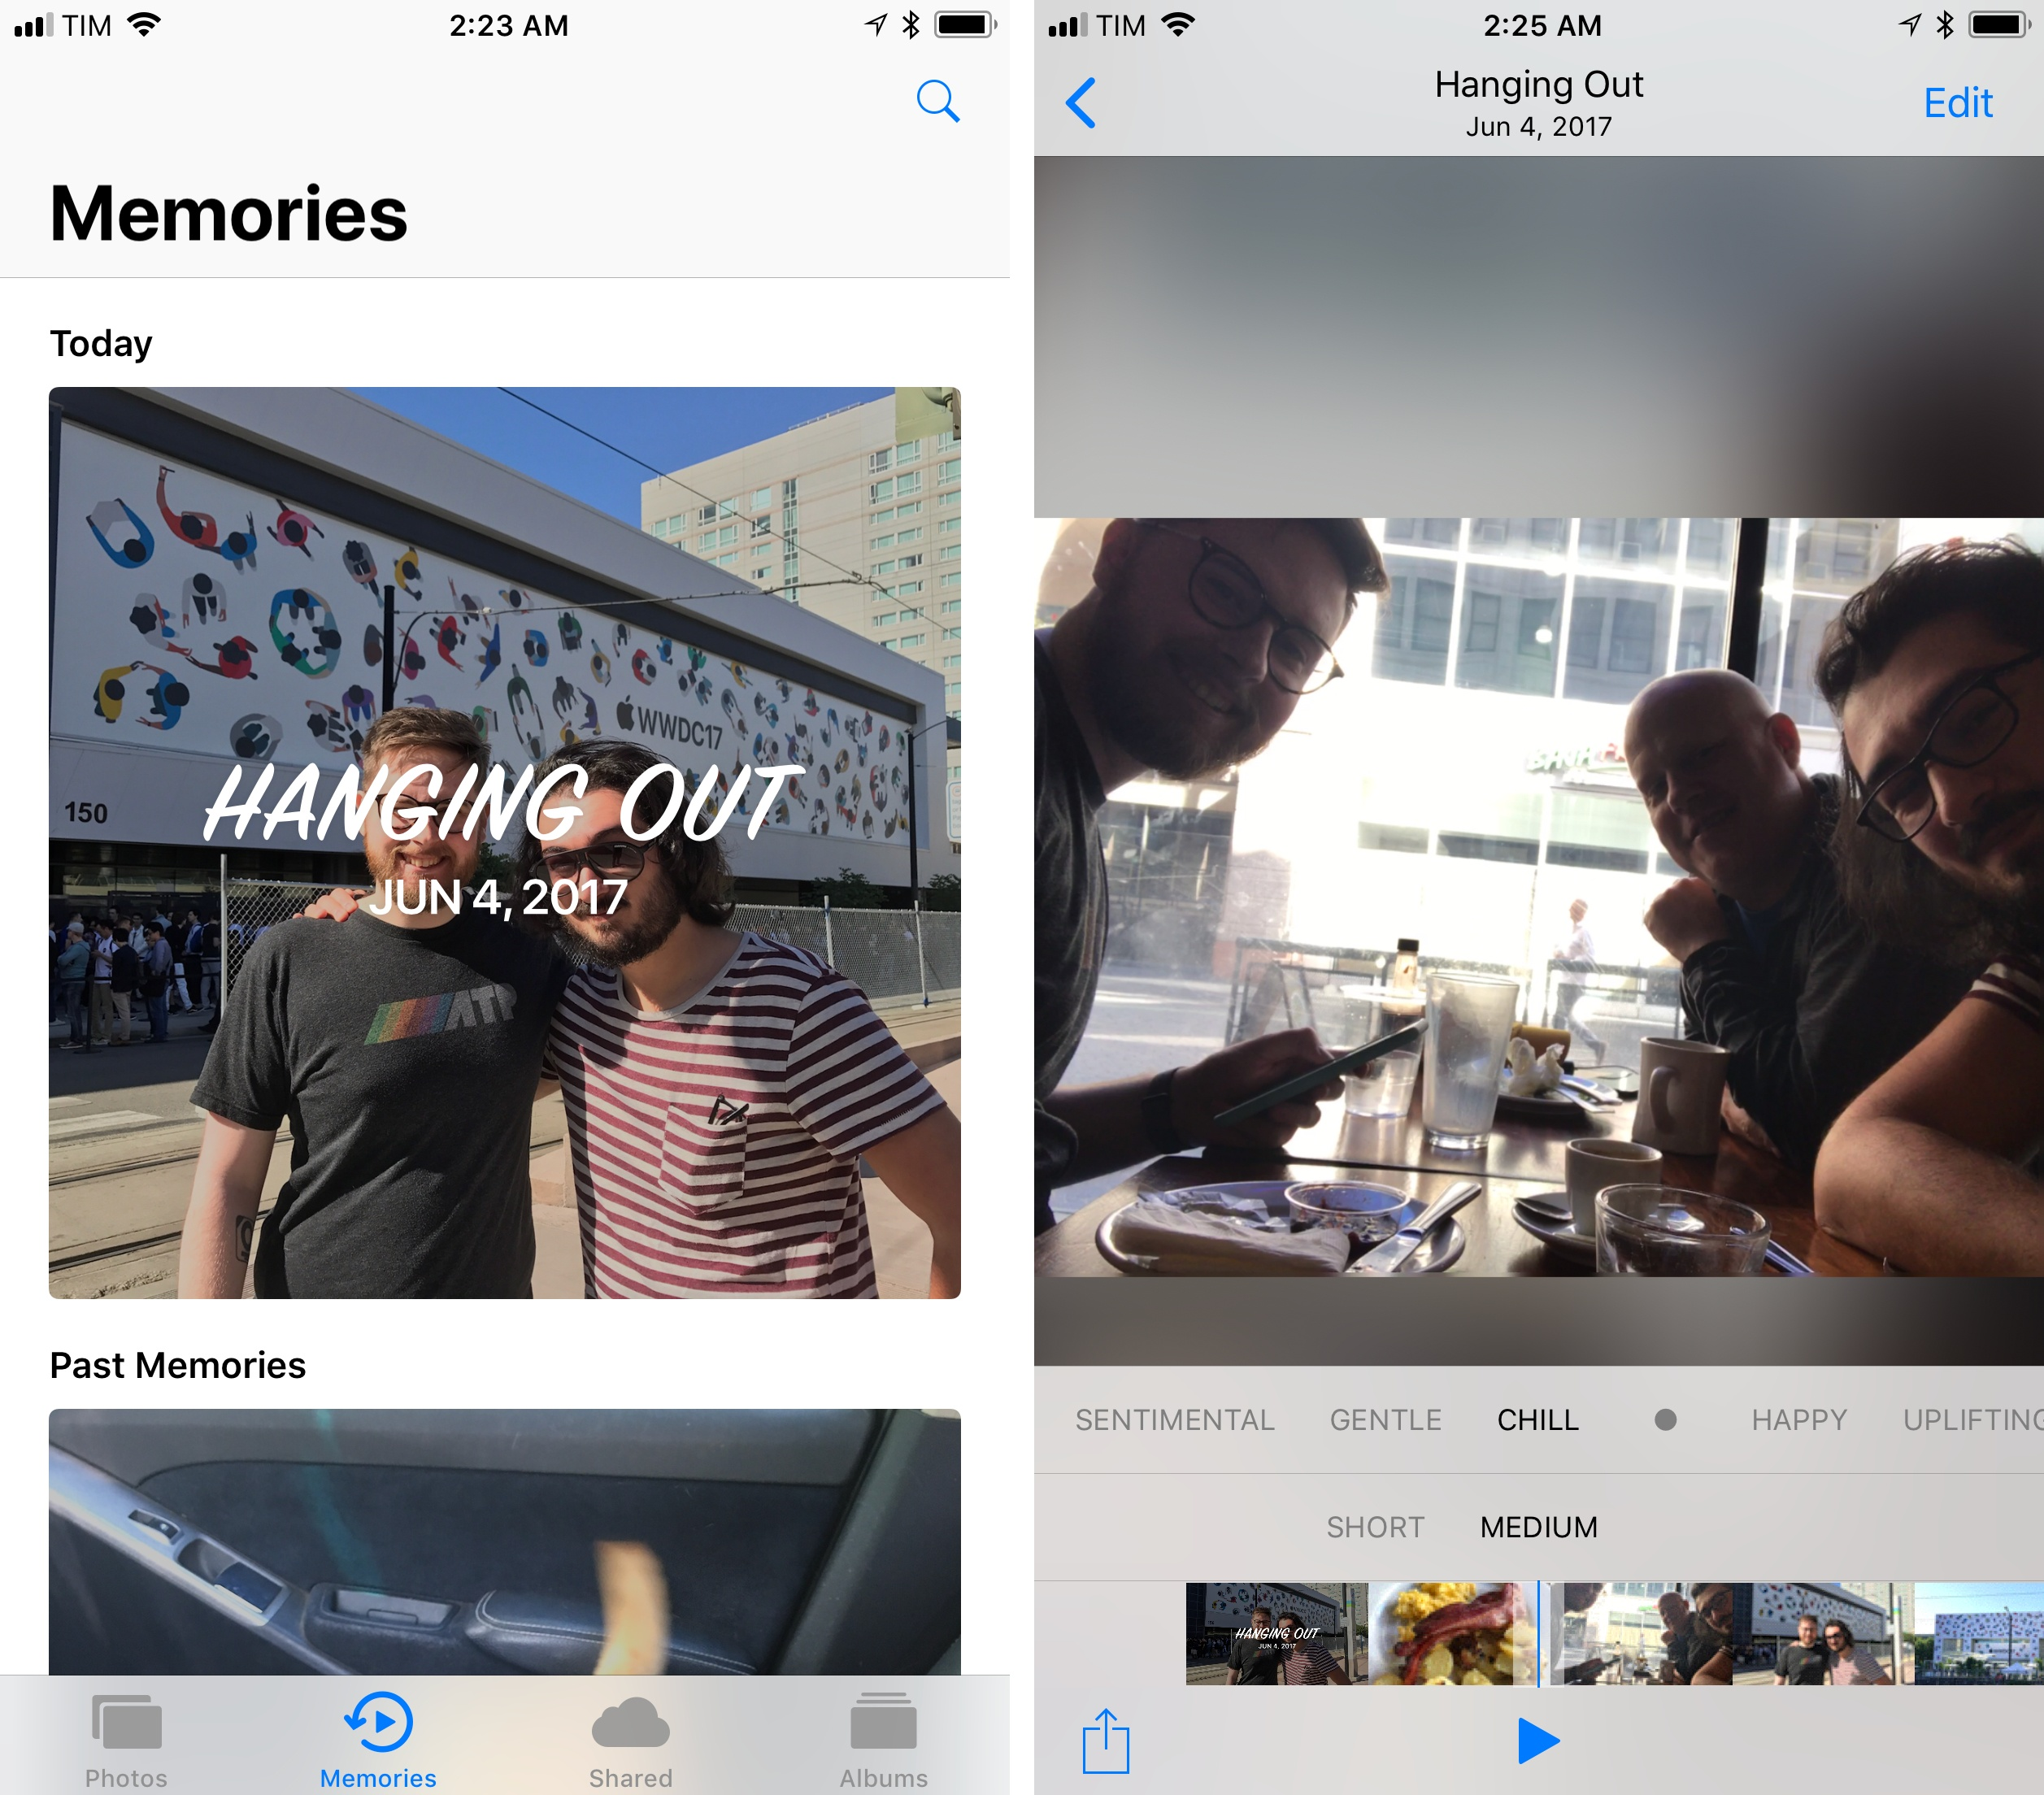 Memory Movies are now optimized for portrait mode.